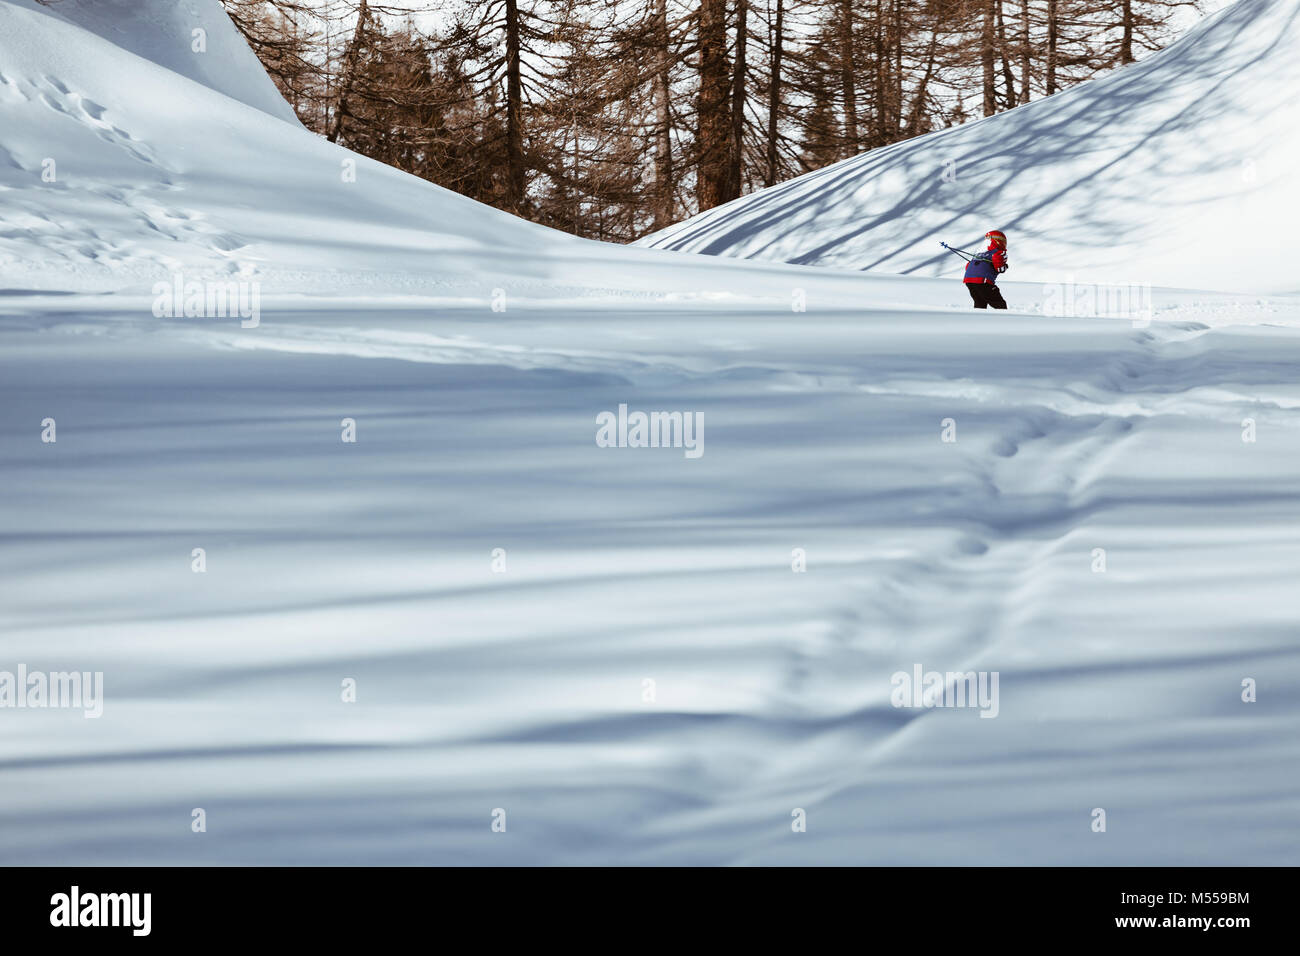 Kid skier skiing down the slope - downhill in high mountains. - Stock Image